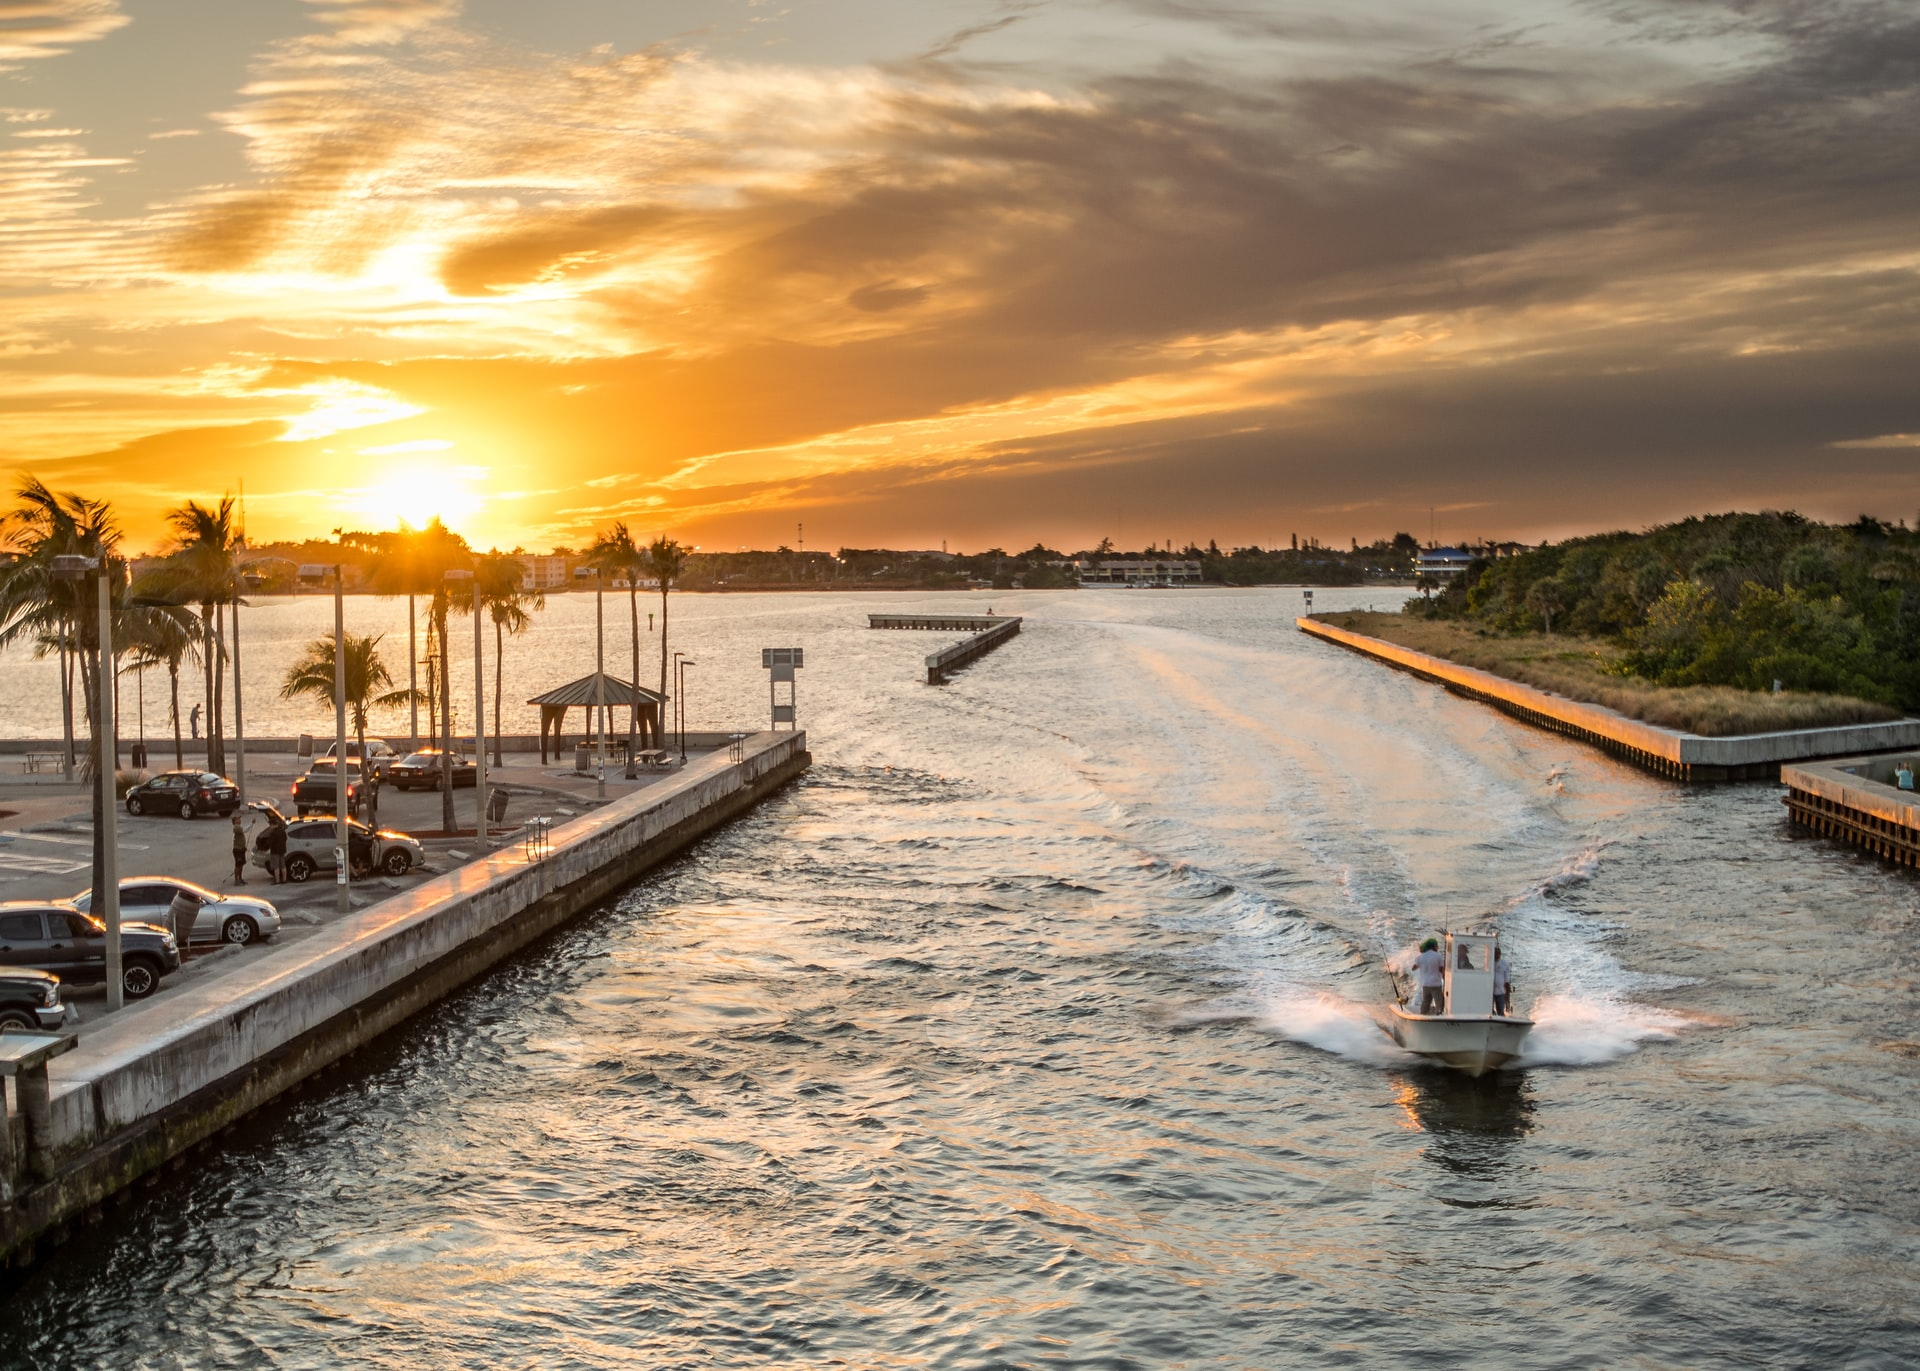 Boating Tips For Visiting Snowbirds